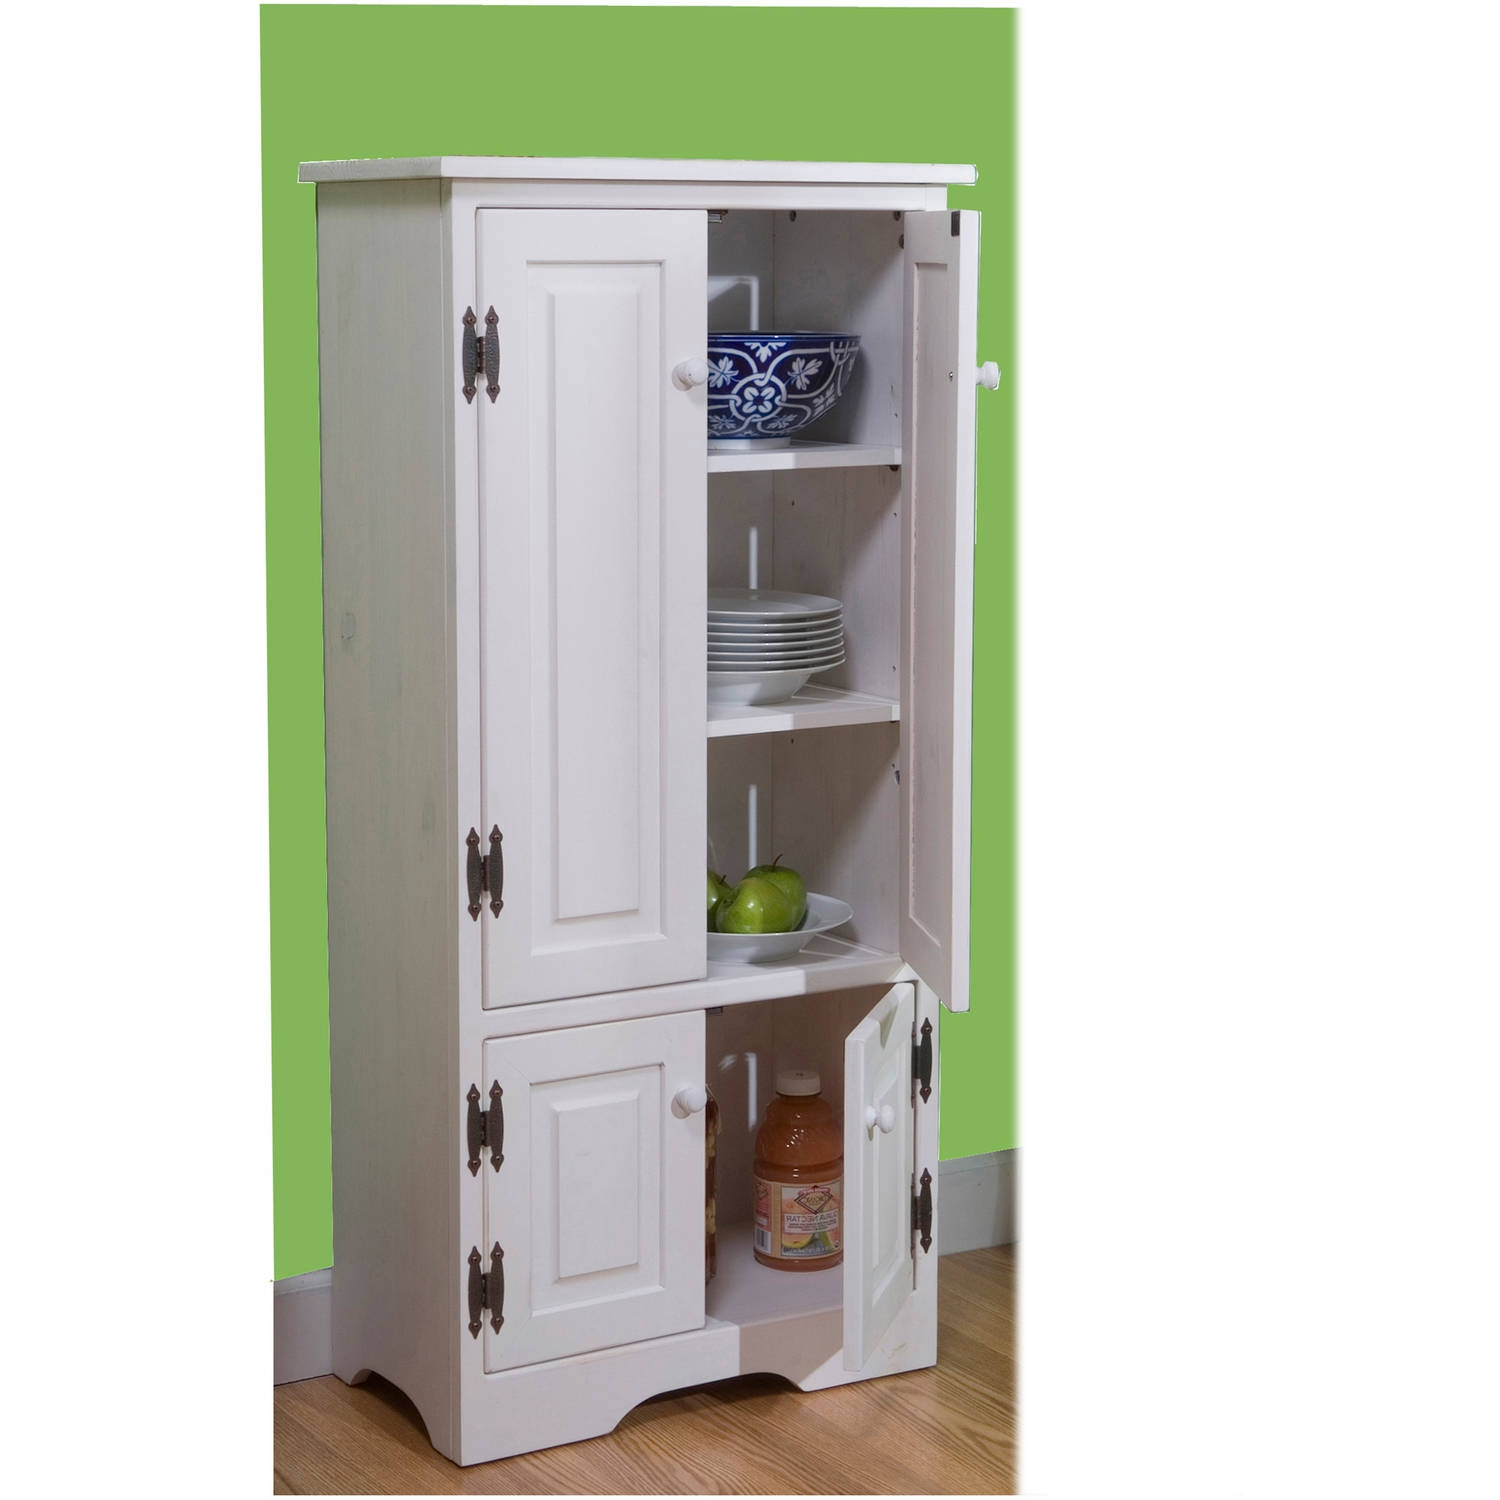 Tall Pantry Storage Cabinets With Doors